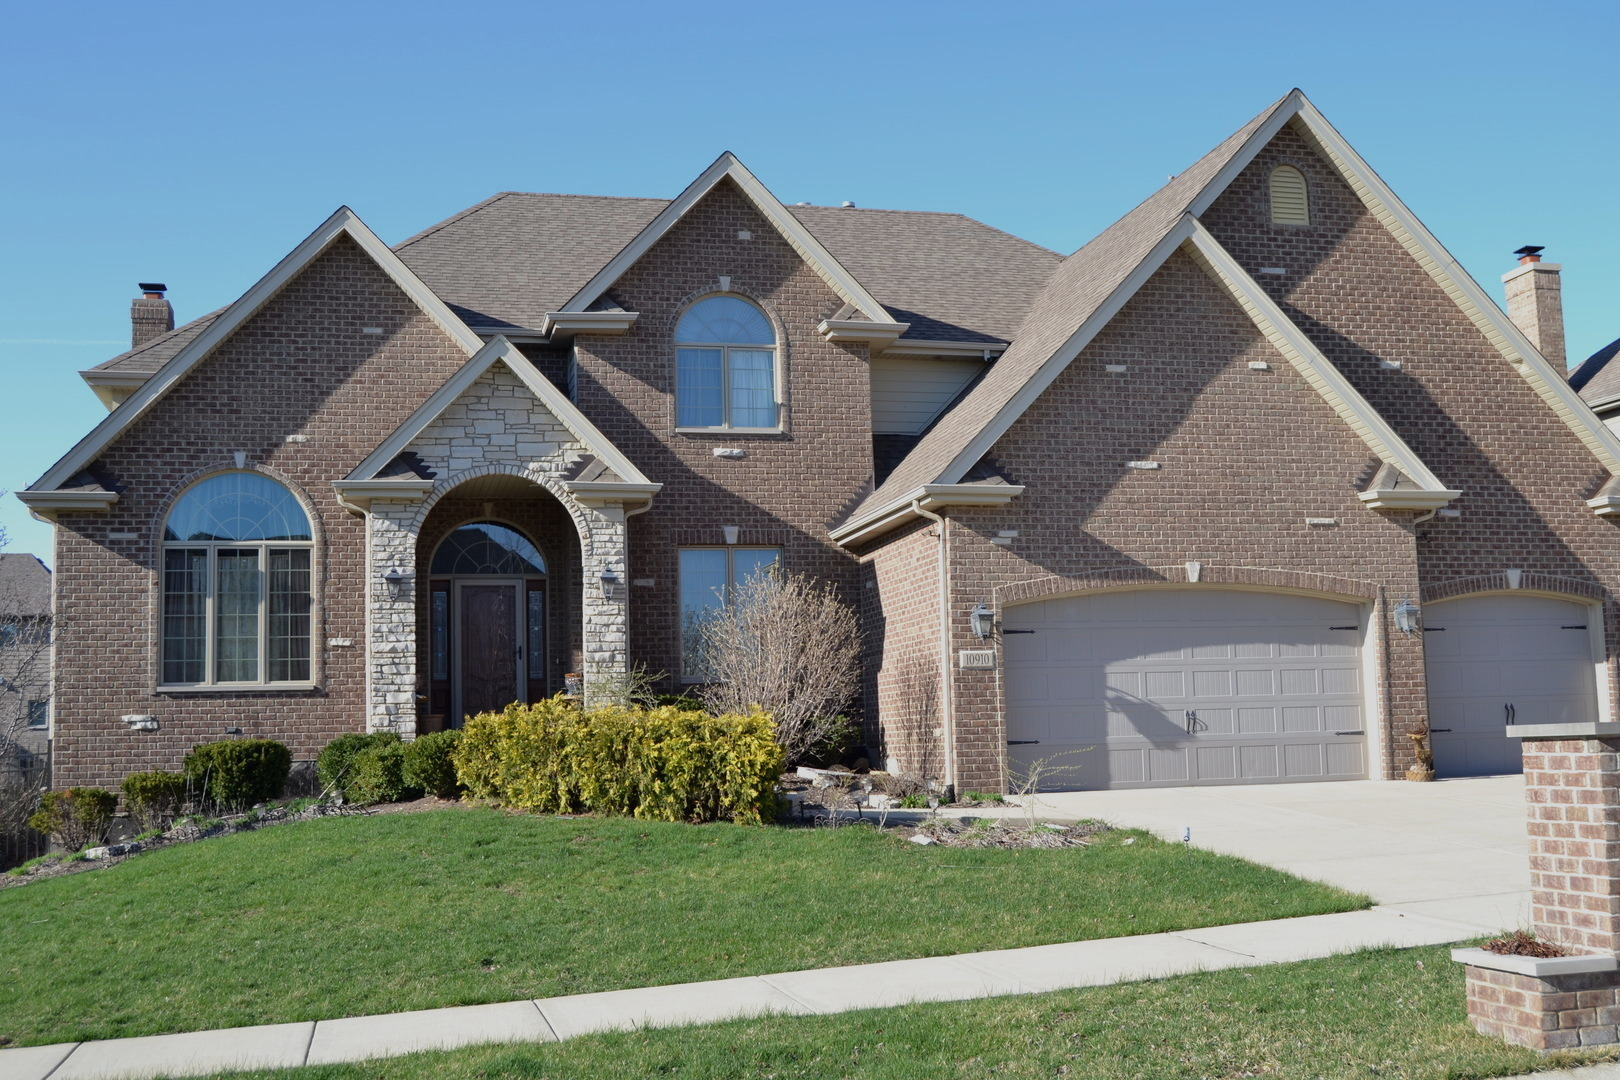 Property for sale at 10910 Sheridans Trail, Orland Park,  Il 60467